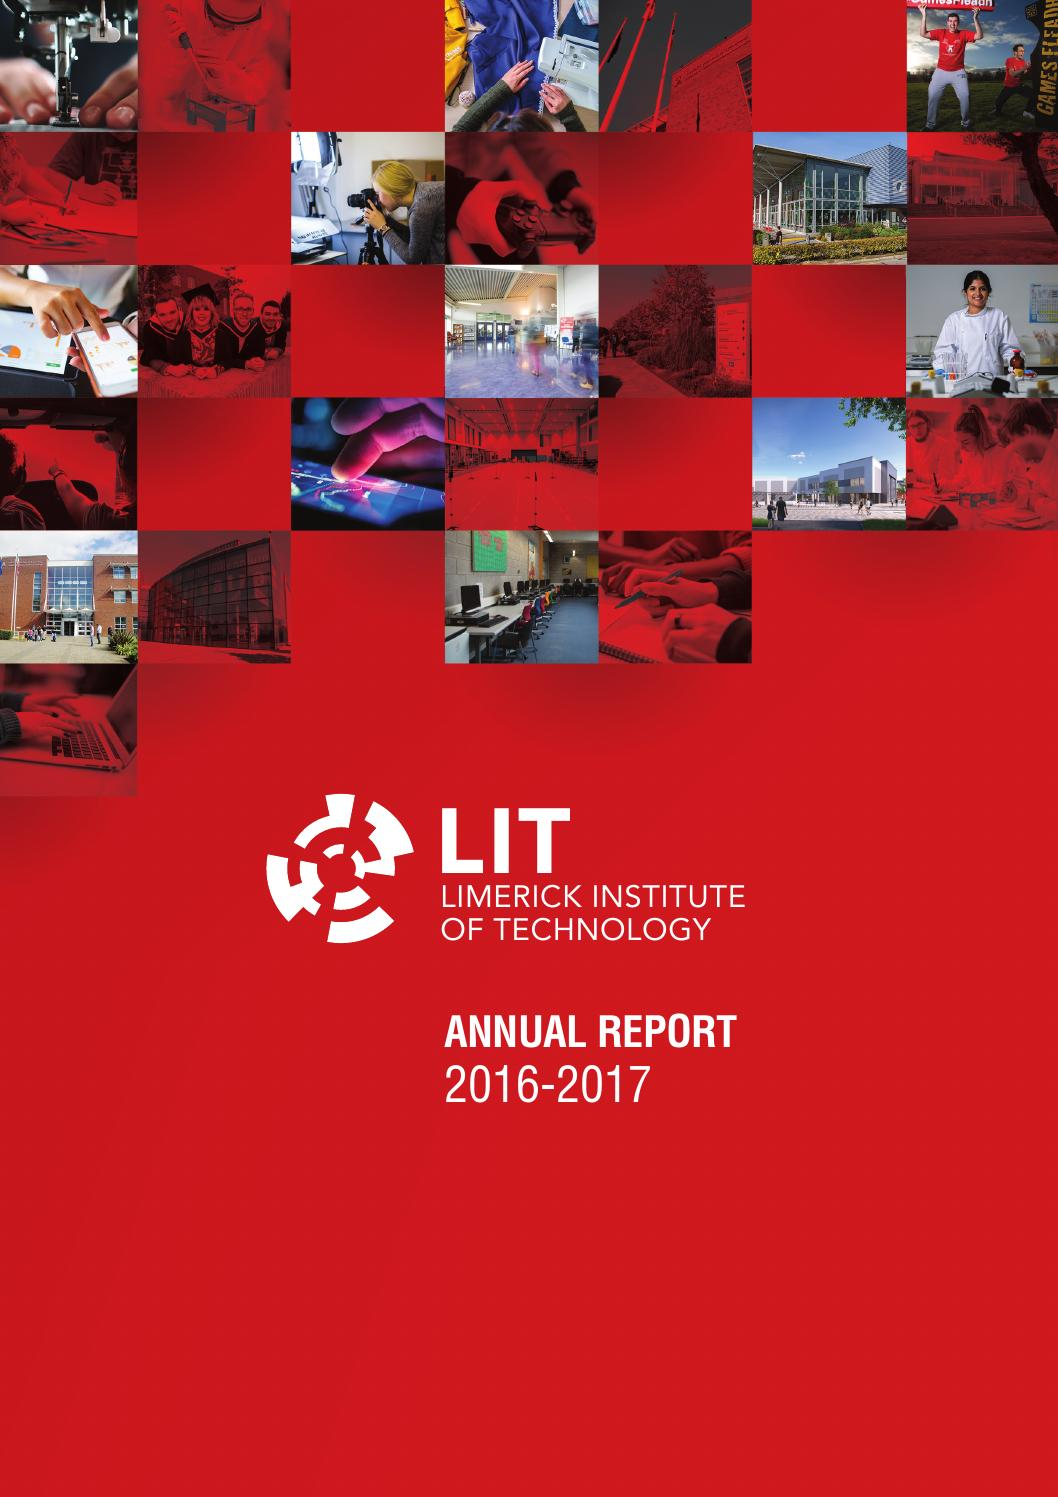 LIT Annual Report 2016-2017 by LIT - issuu